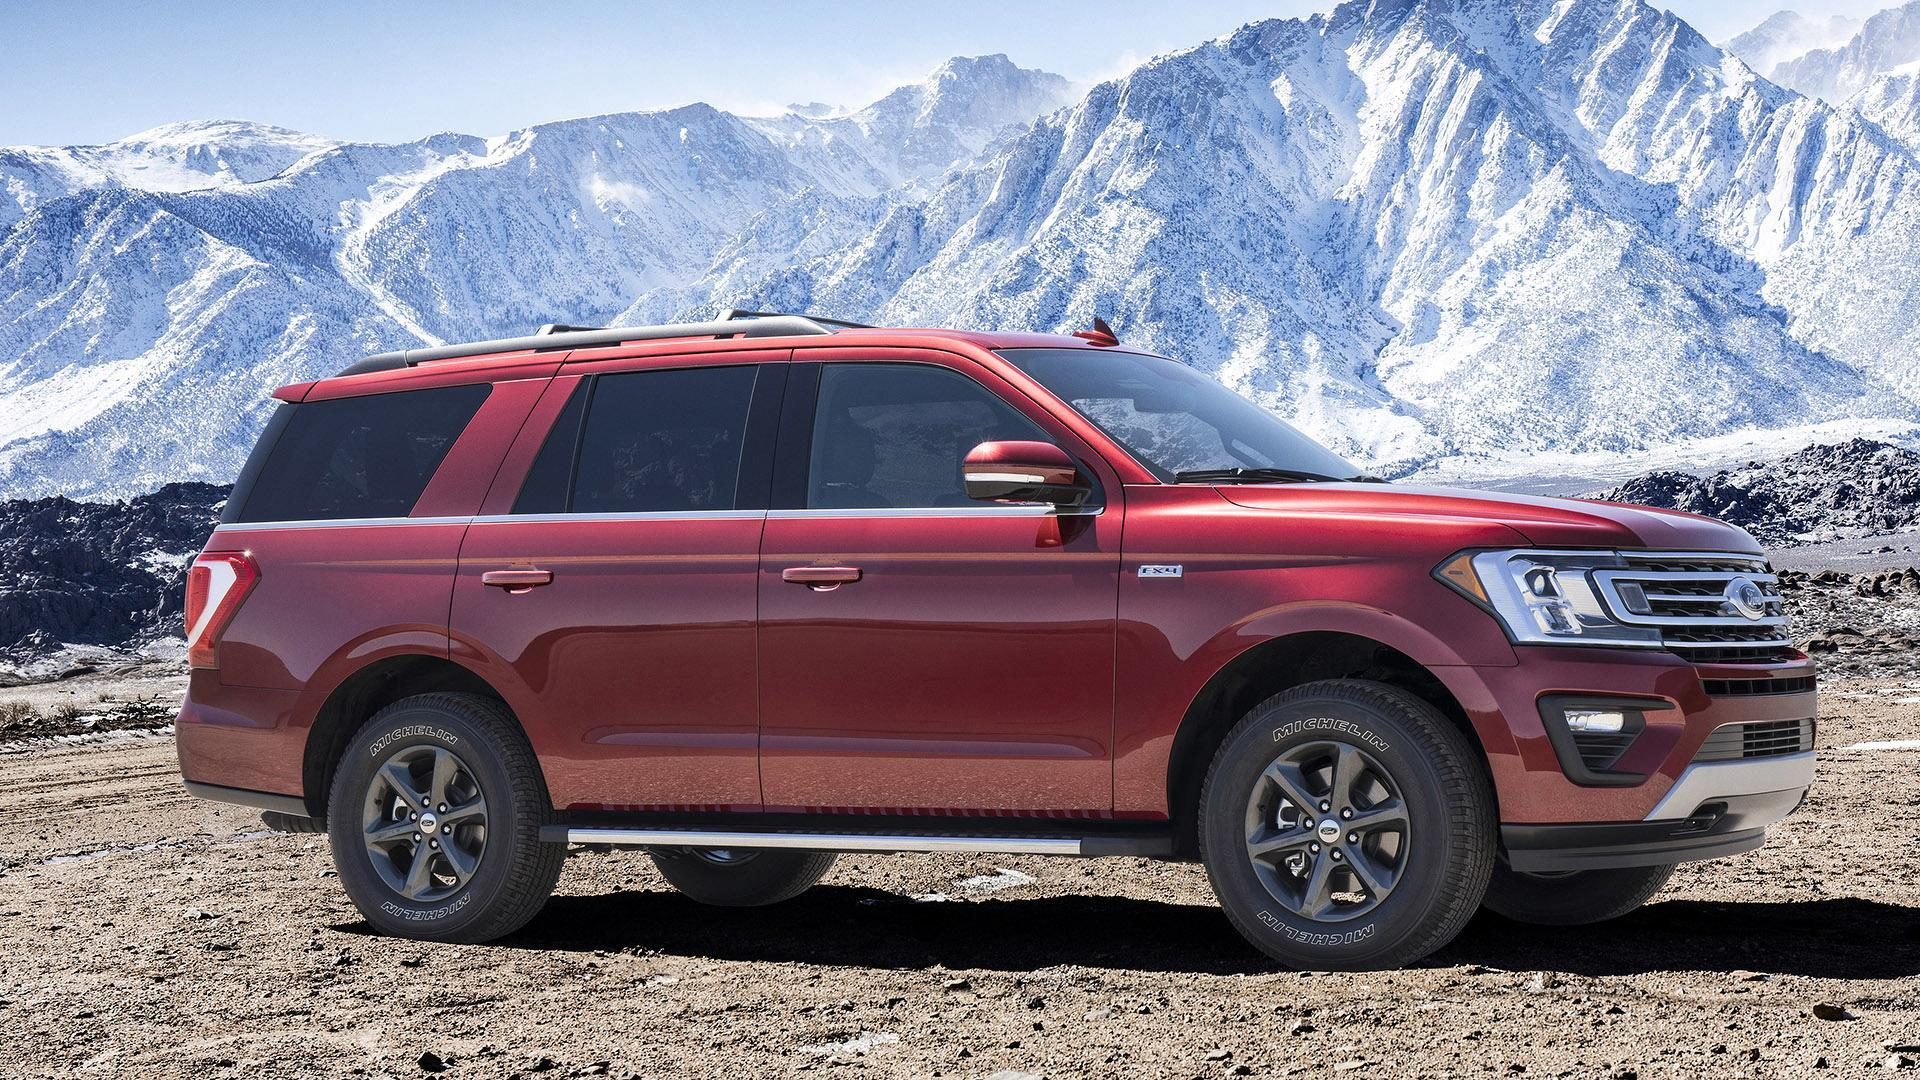 Ford Expedition Vs Gmc Yukon New Ford Cars Trucks And Suvs Are Always More Powerful More Capable And More Efficient Than Their Previous Model Year